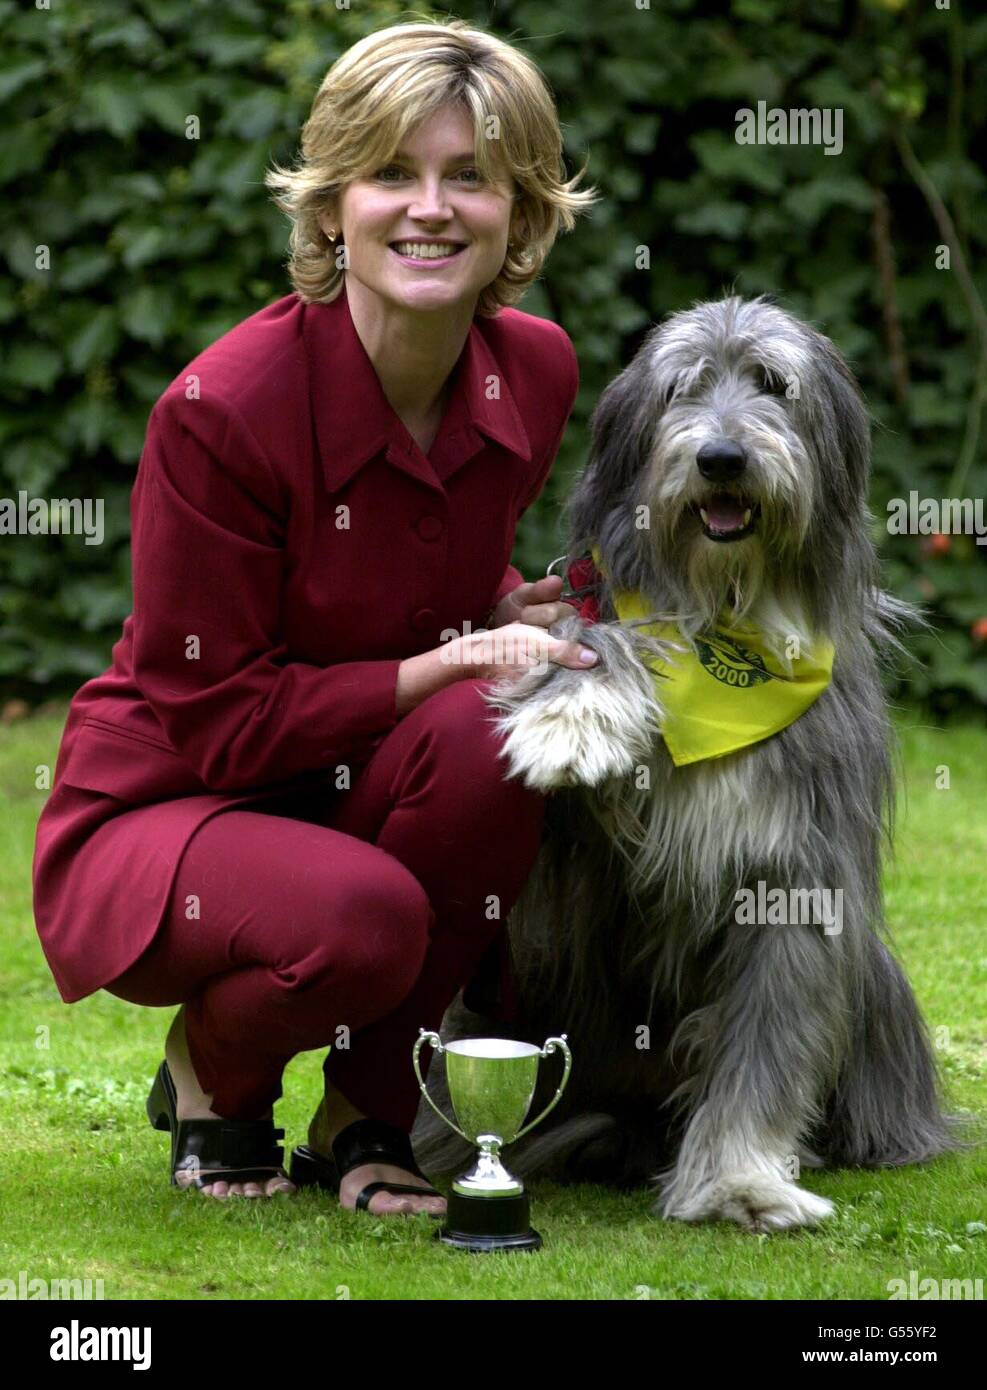 Dog Awards Anthea Turner - Stock Image